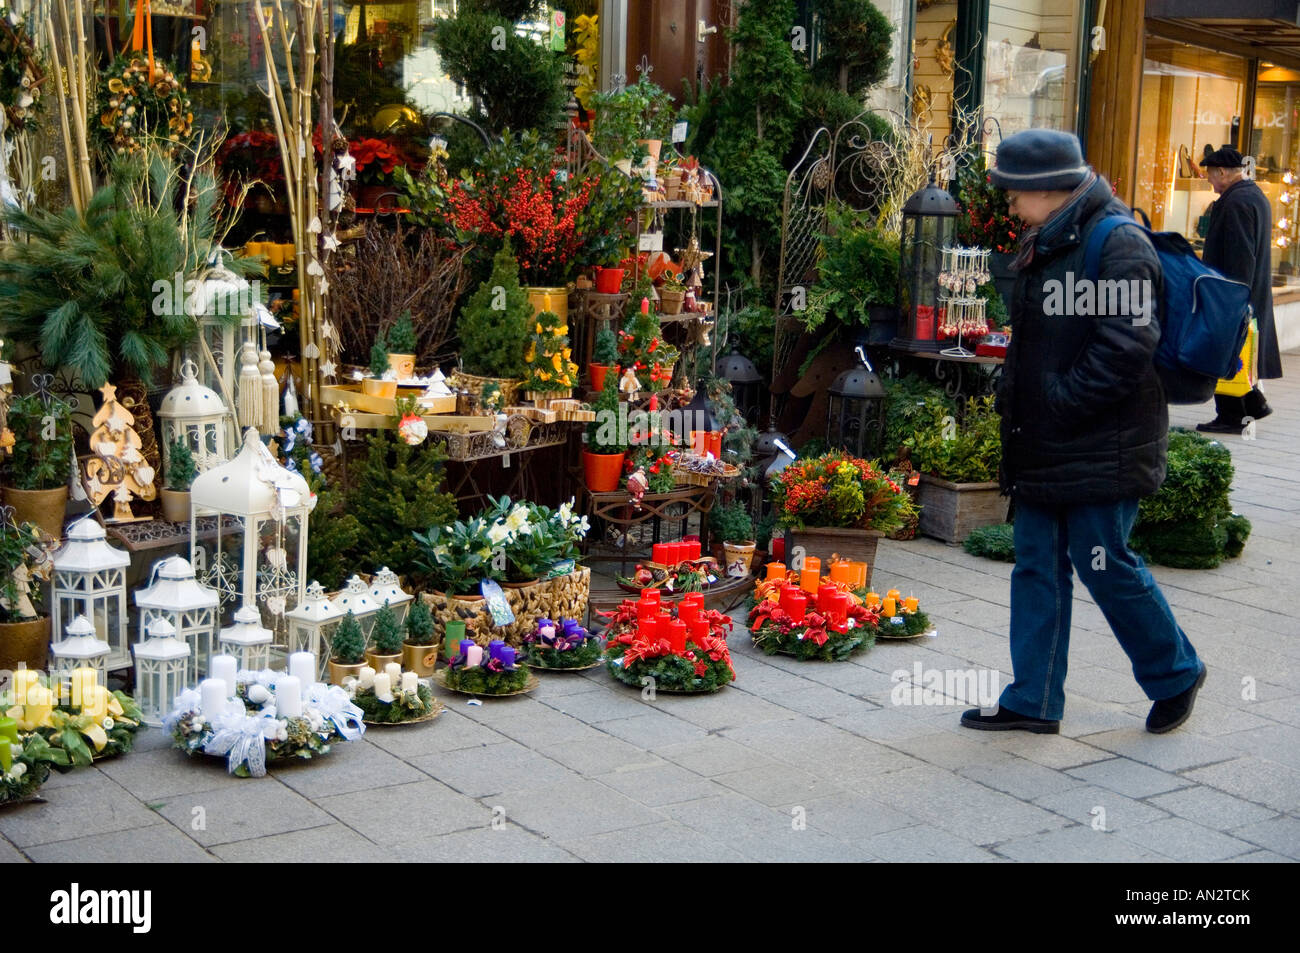 Colourful Christmas Flower Decorations And Dried Flower Arrangements Stock Photo Alamy